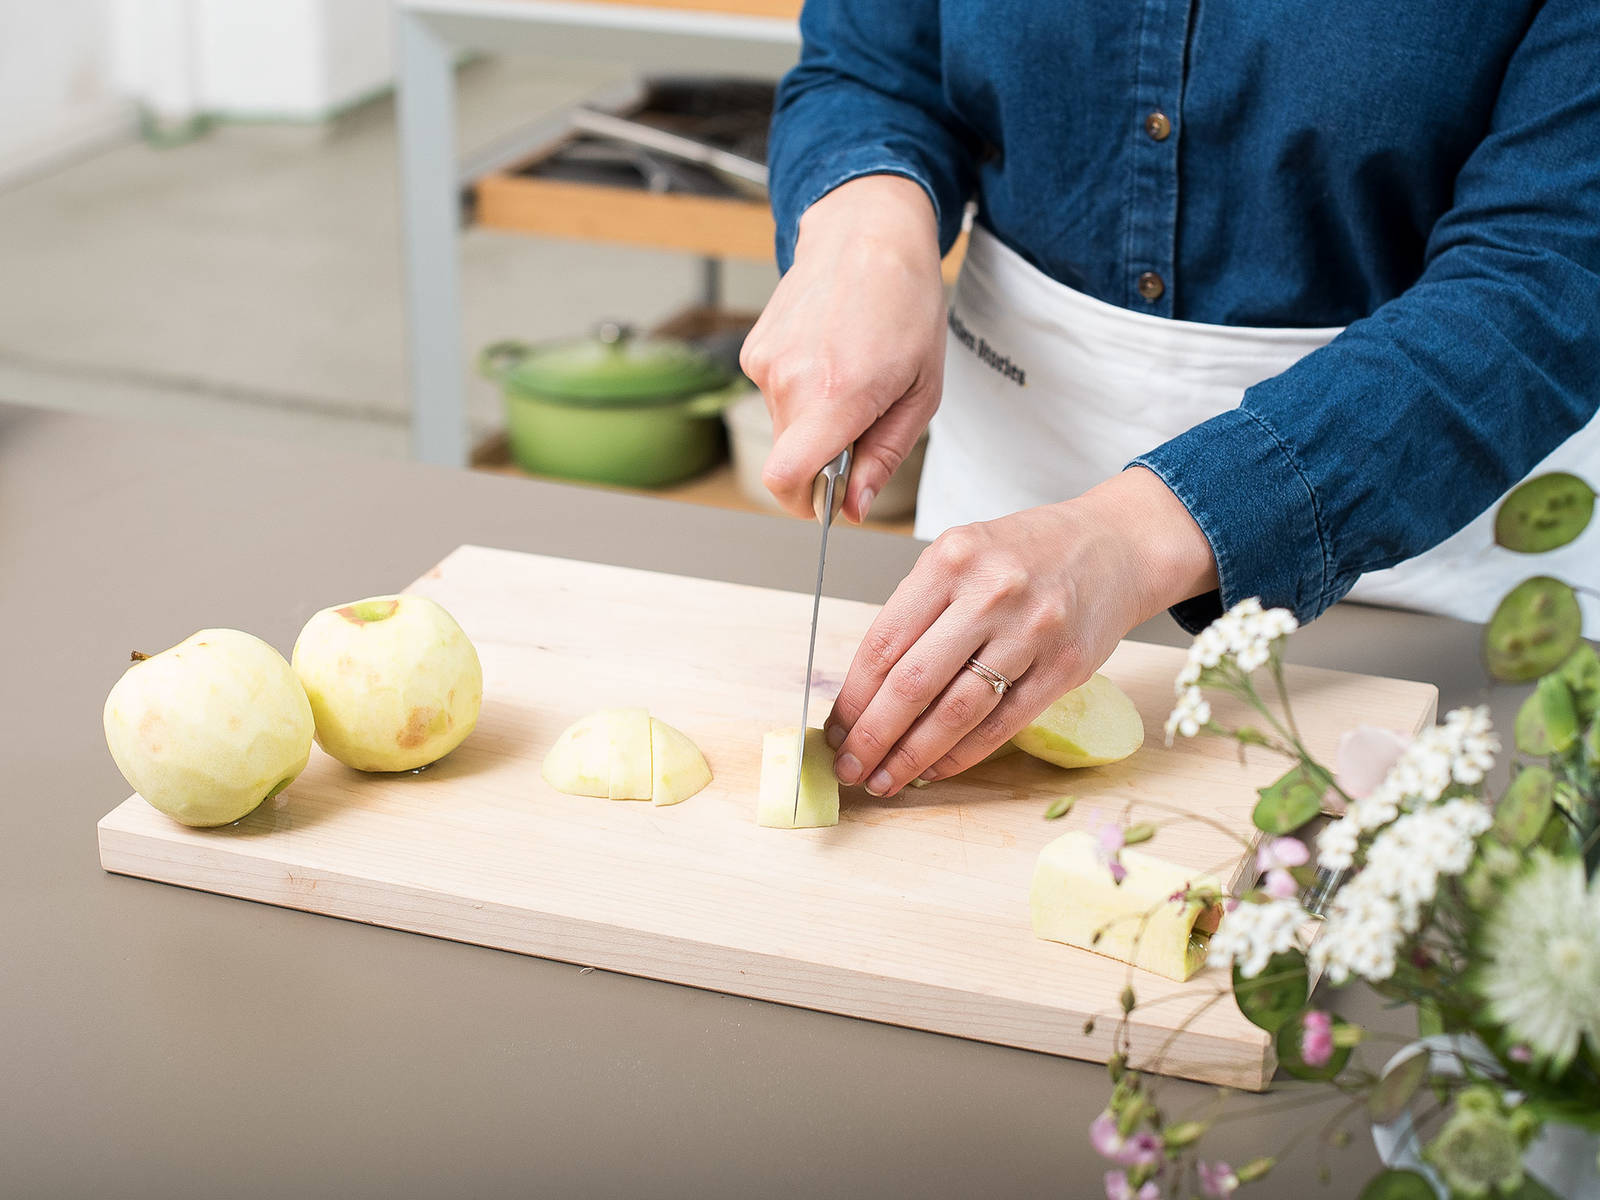 Preheat the oven to 180°C/350°F. Line a baking sheet with parchment paper, or grease it well and dust with flour. Set aside. Peel the apples, core, and cut into quarters. Cut the apple quarters into slightly thinner slices, then mix in a large bowl with lemon juice to avoid browning. Set aside.